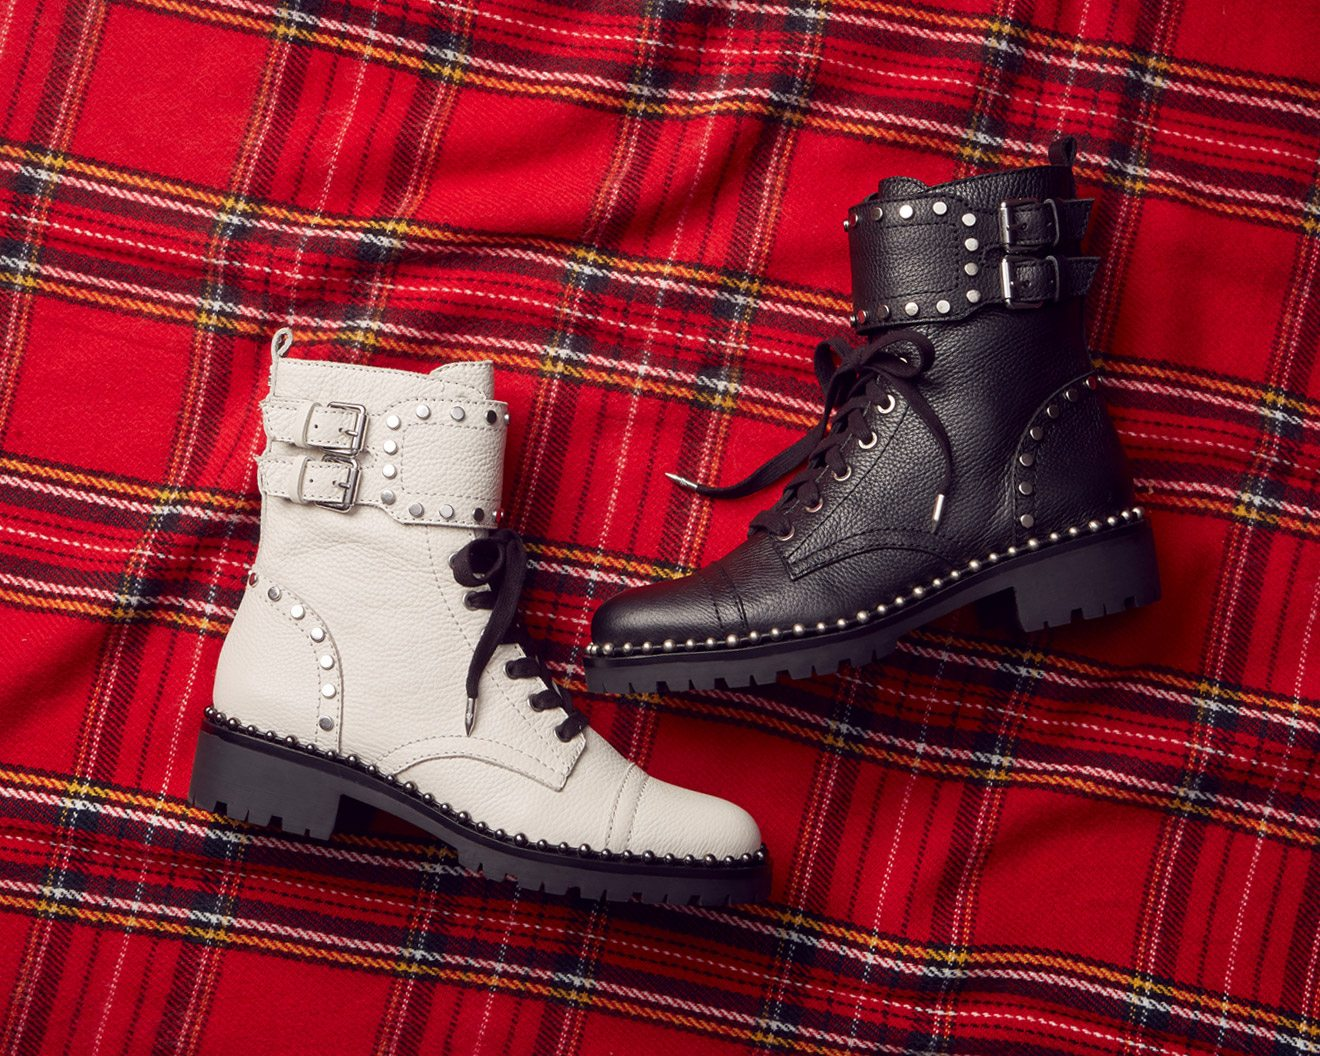 ba80c79aff0b5 Studded combat boots are in! - Sam Edelman Email Archive